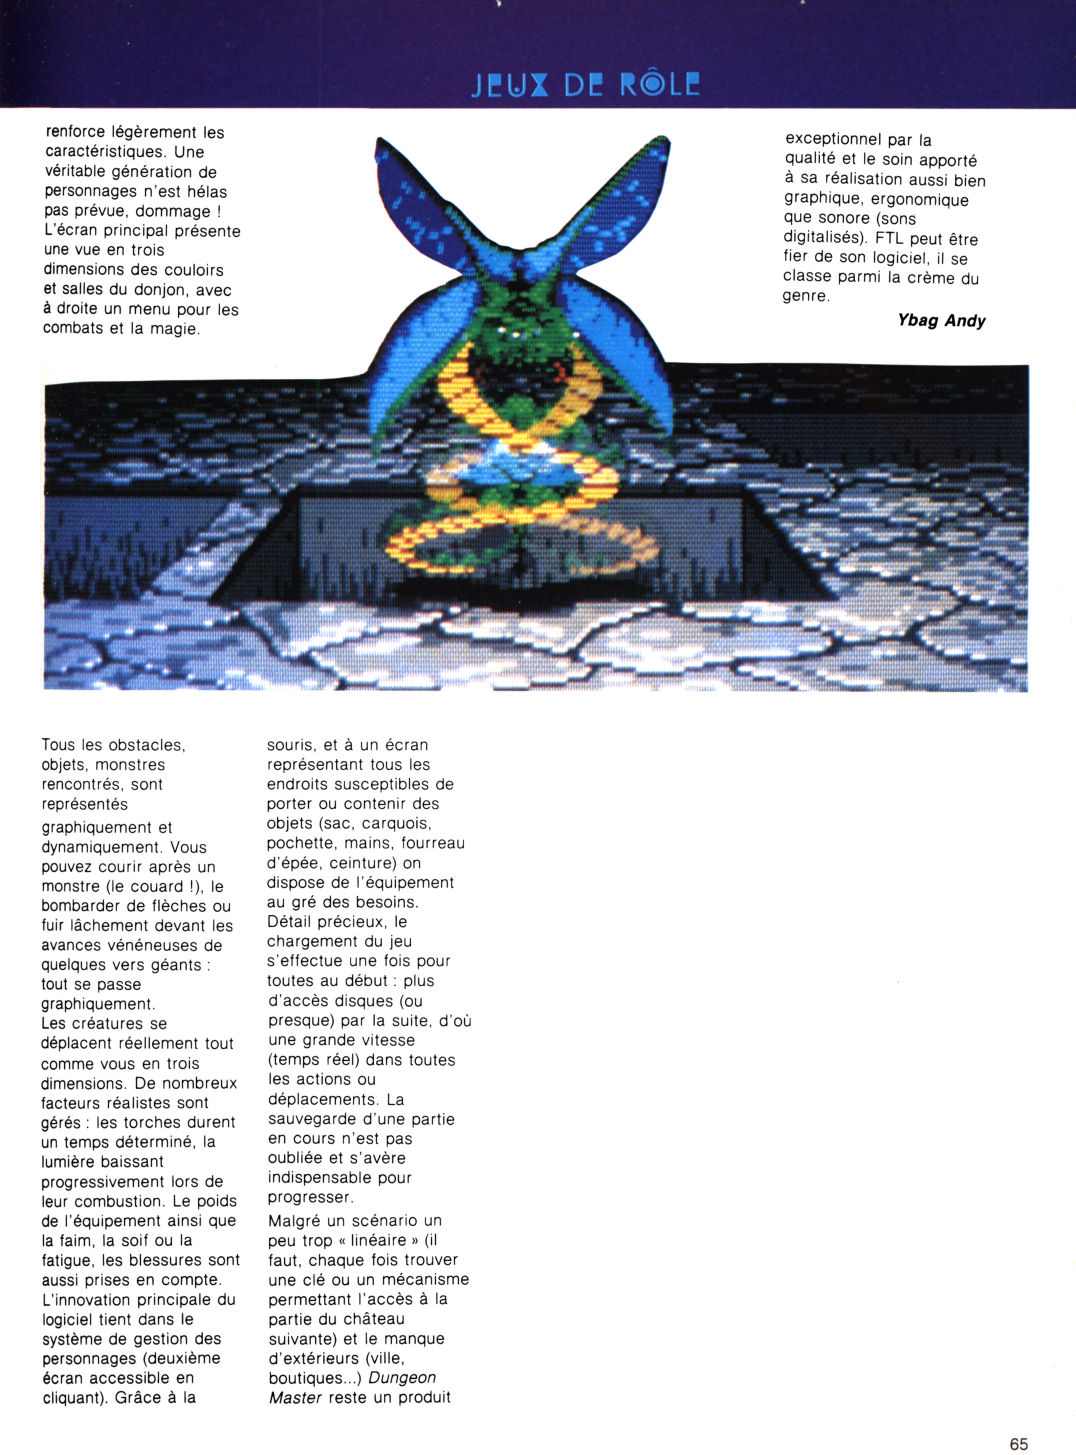 Dungeon Master Review published in French magazine 'Game Mag', Issue #5 March 1988, Page 65